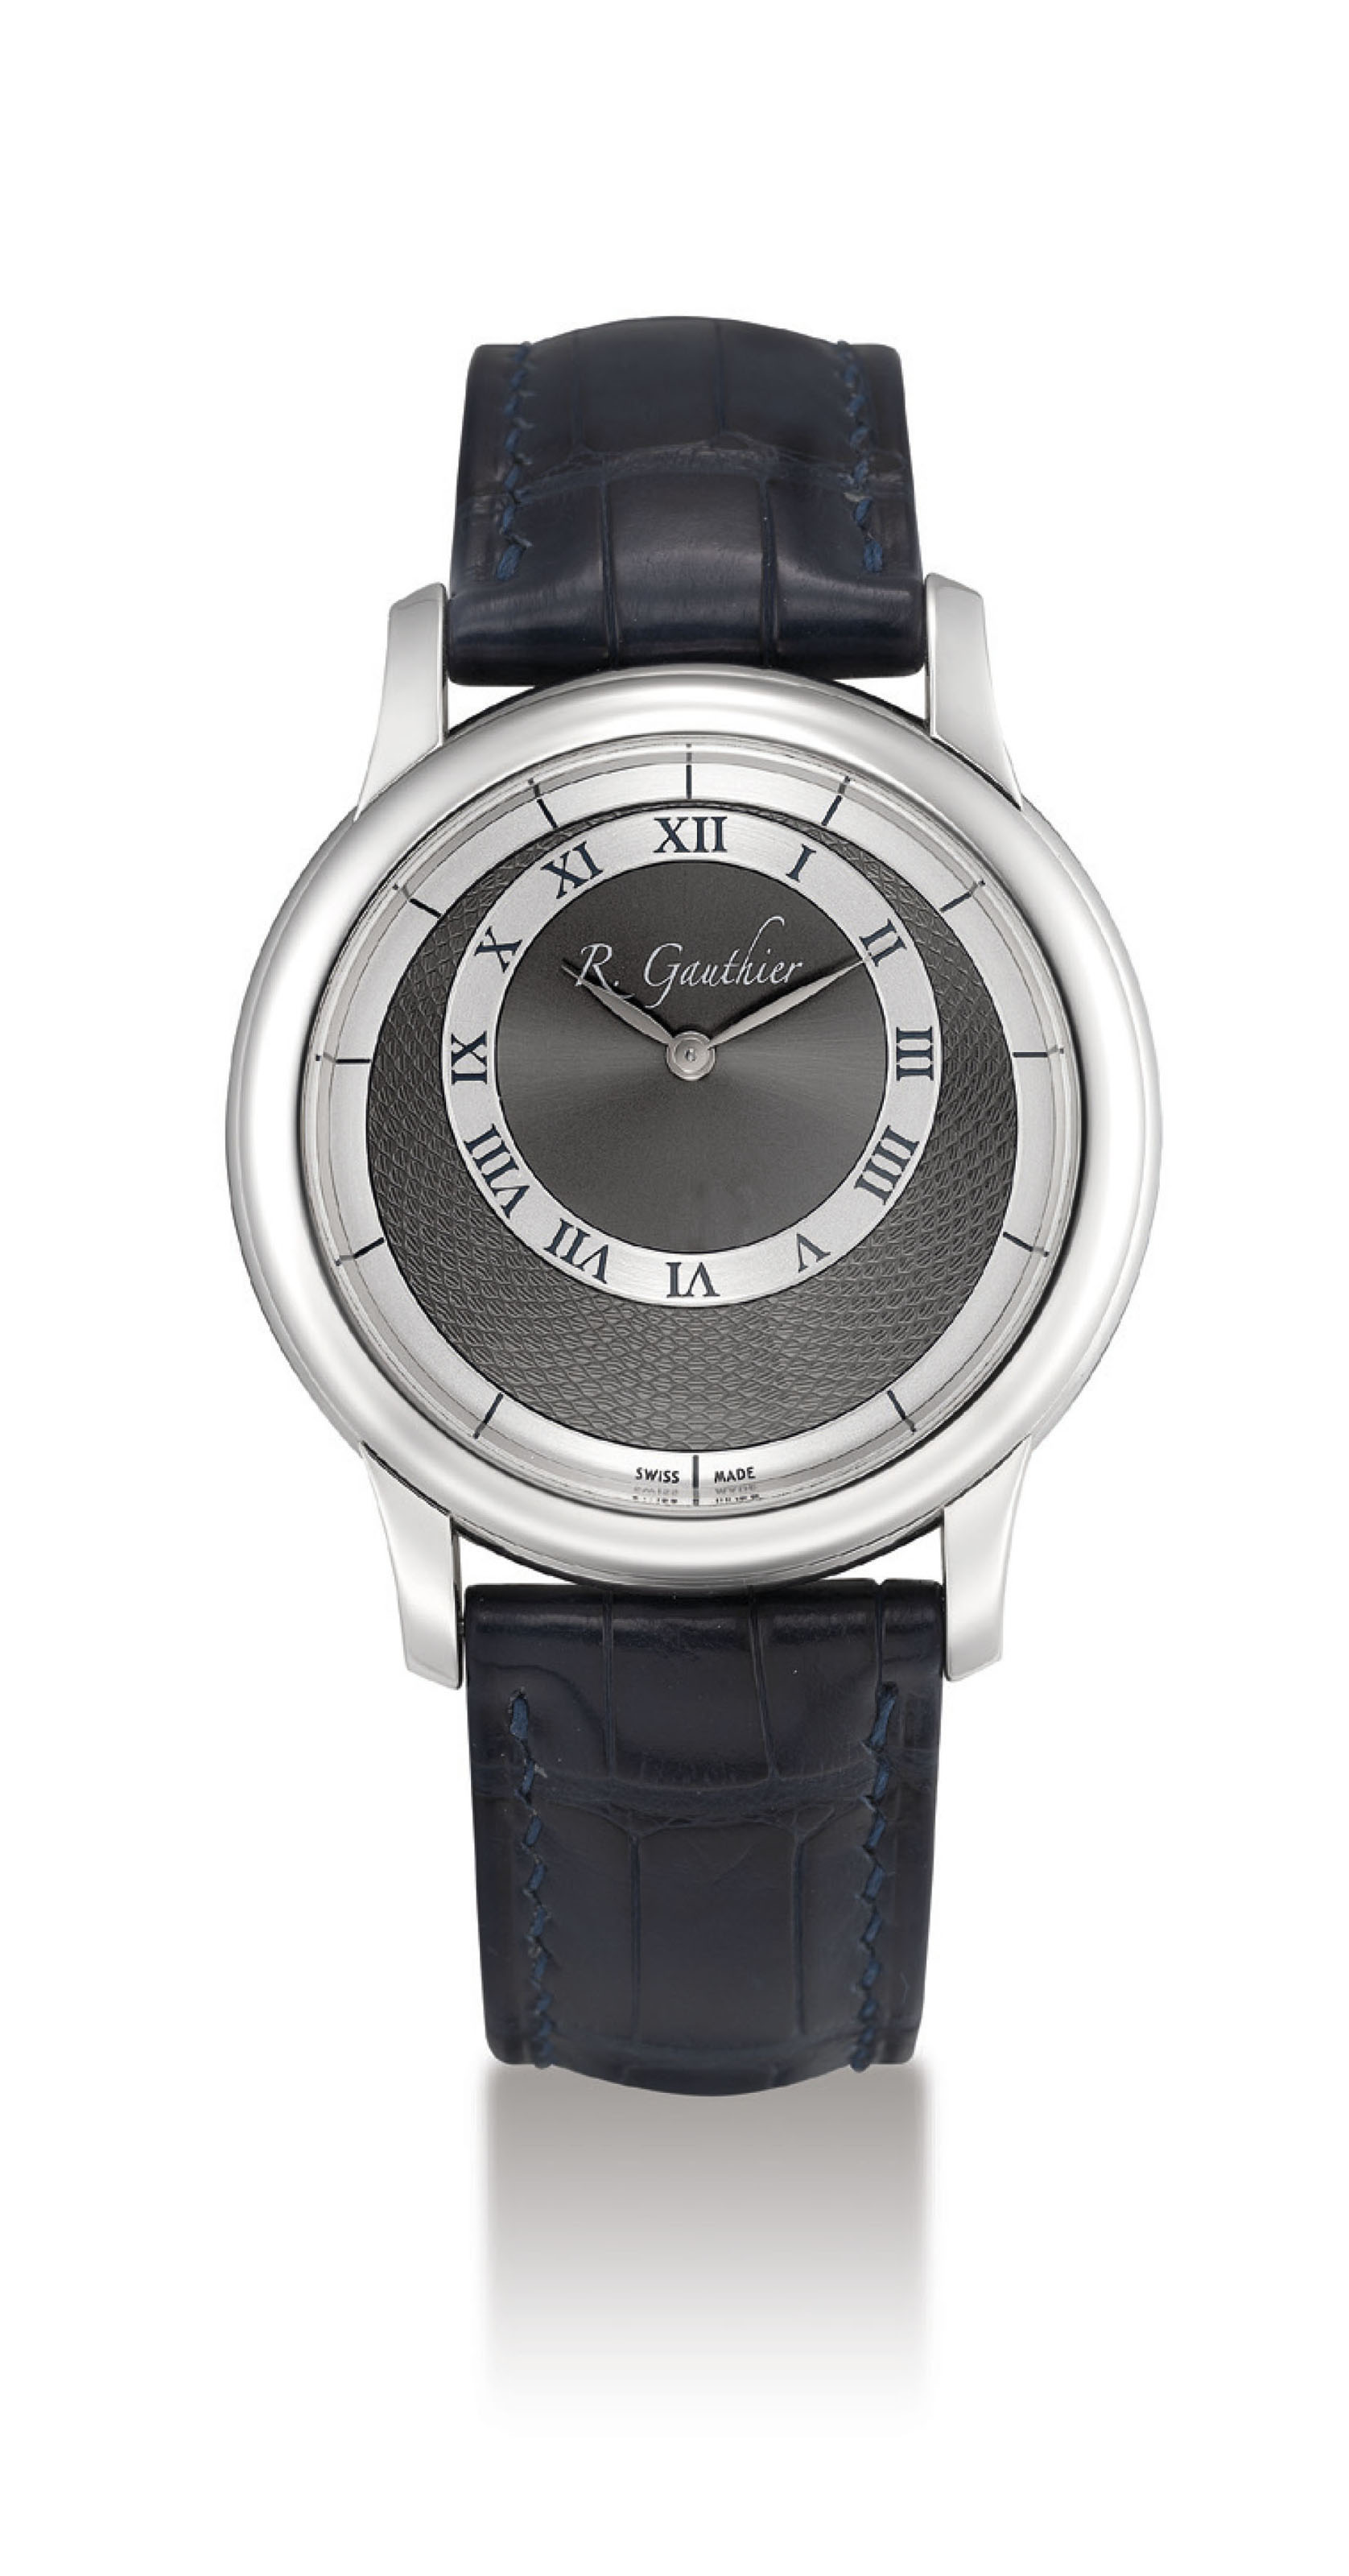 ROMAIN GAUTHIER. A FINE AND RARE PLATINUM LIMITED EDITION WRISTWATCH